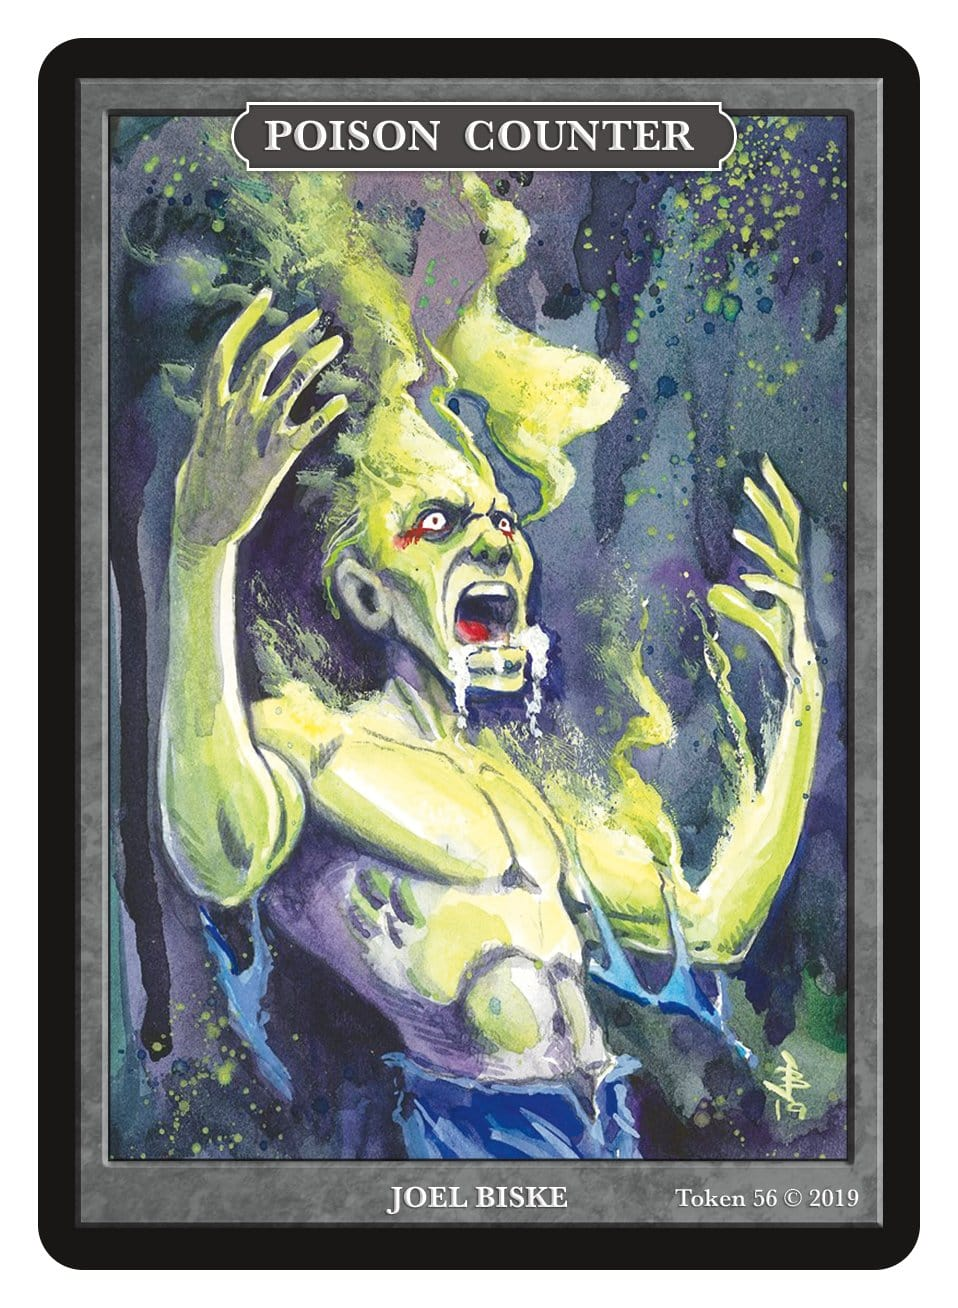 Poison Counter Token by Joel Biske - Token - Original Magic Art - Accessories for Magic the Gathering and other card games